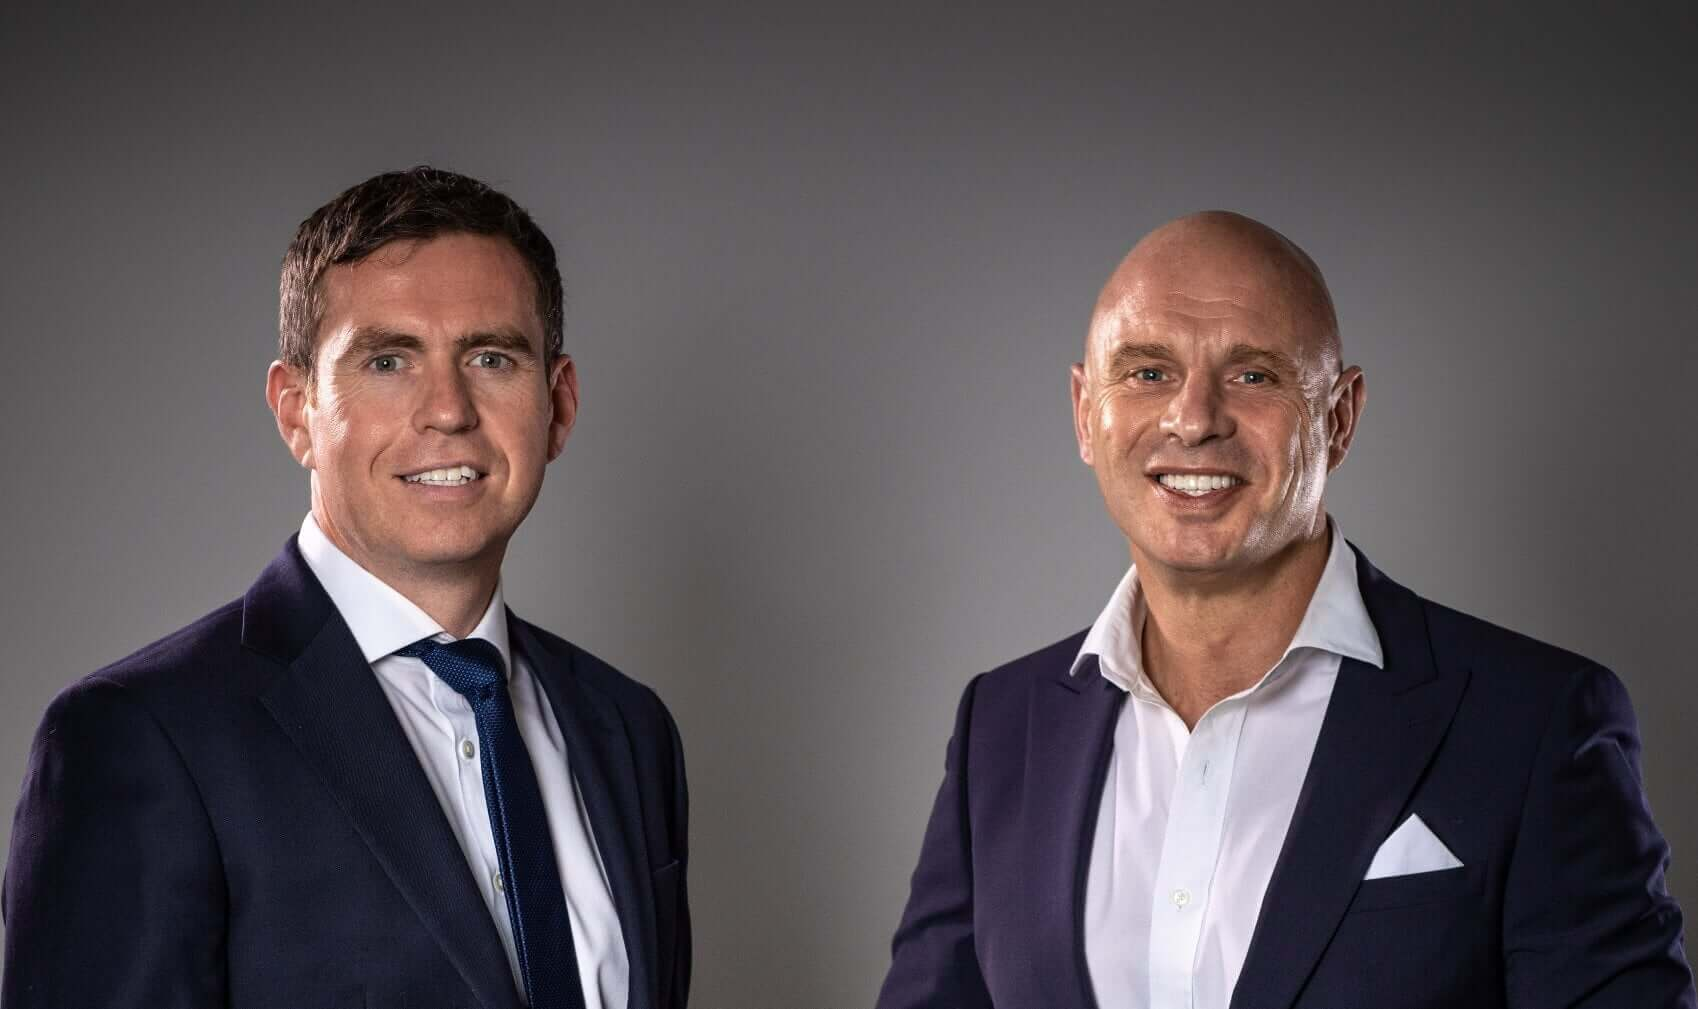 Donall Caherty joins Beyond Corporate